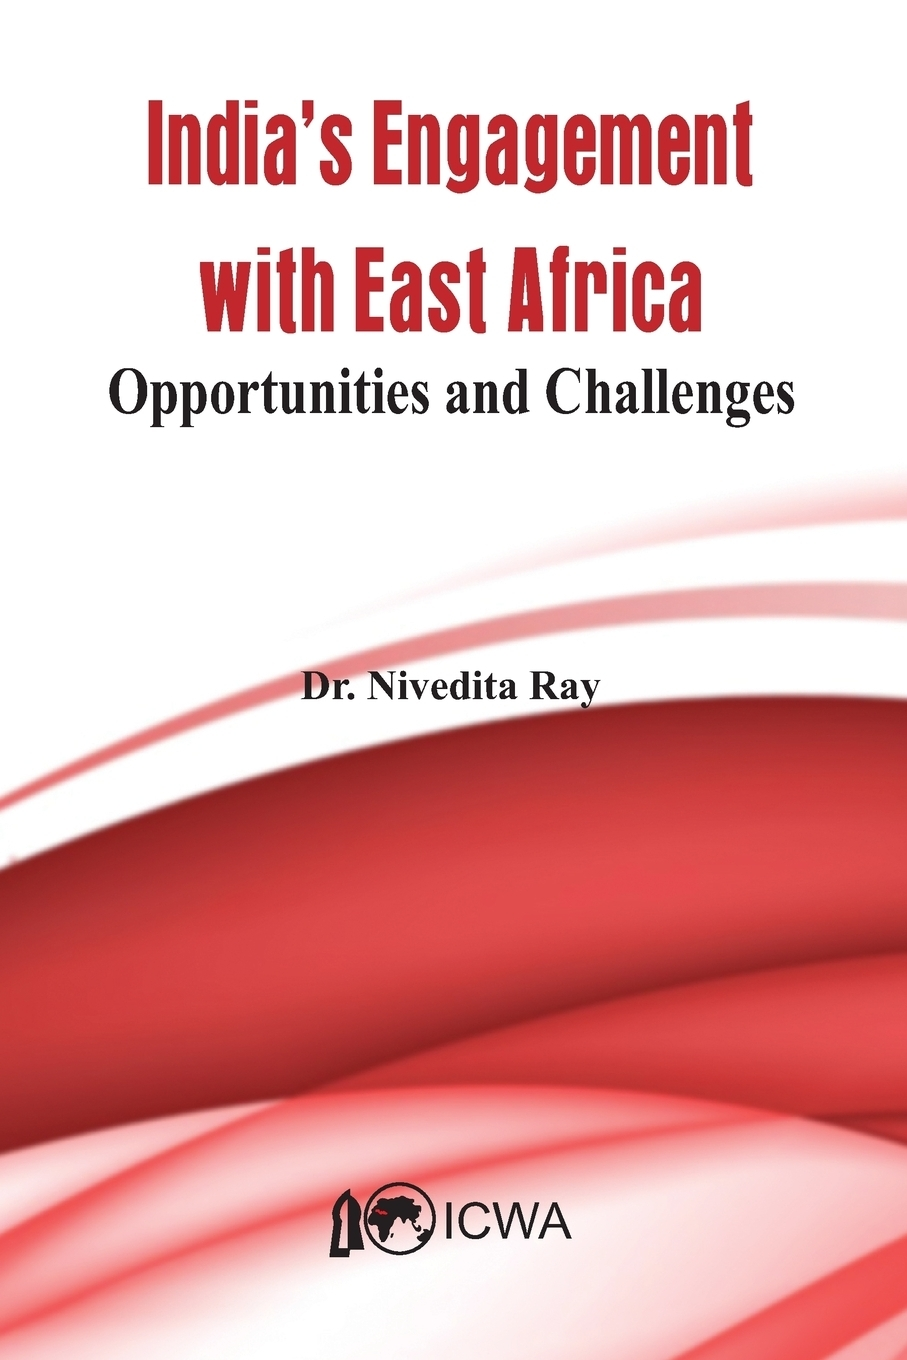 Dr. Nivedita Roy. India's Current Engagement with East Africa. Opportunities and Challenges